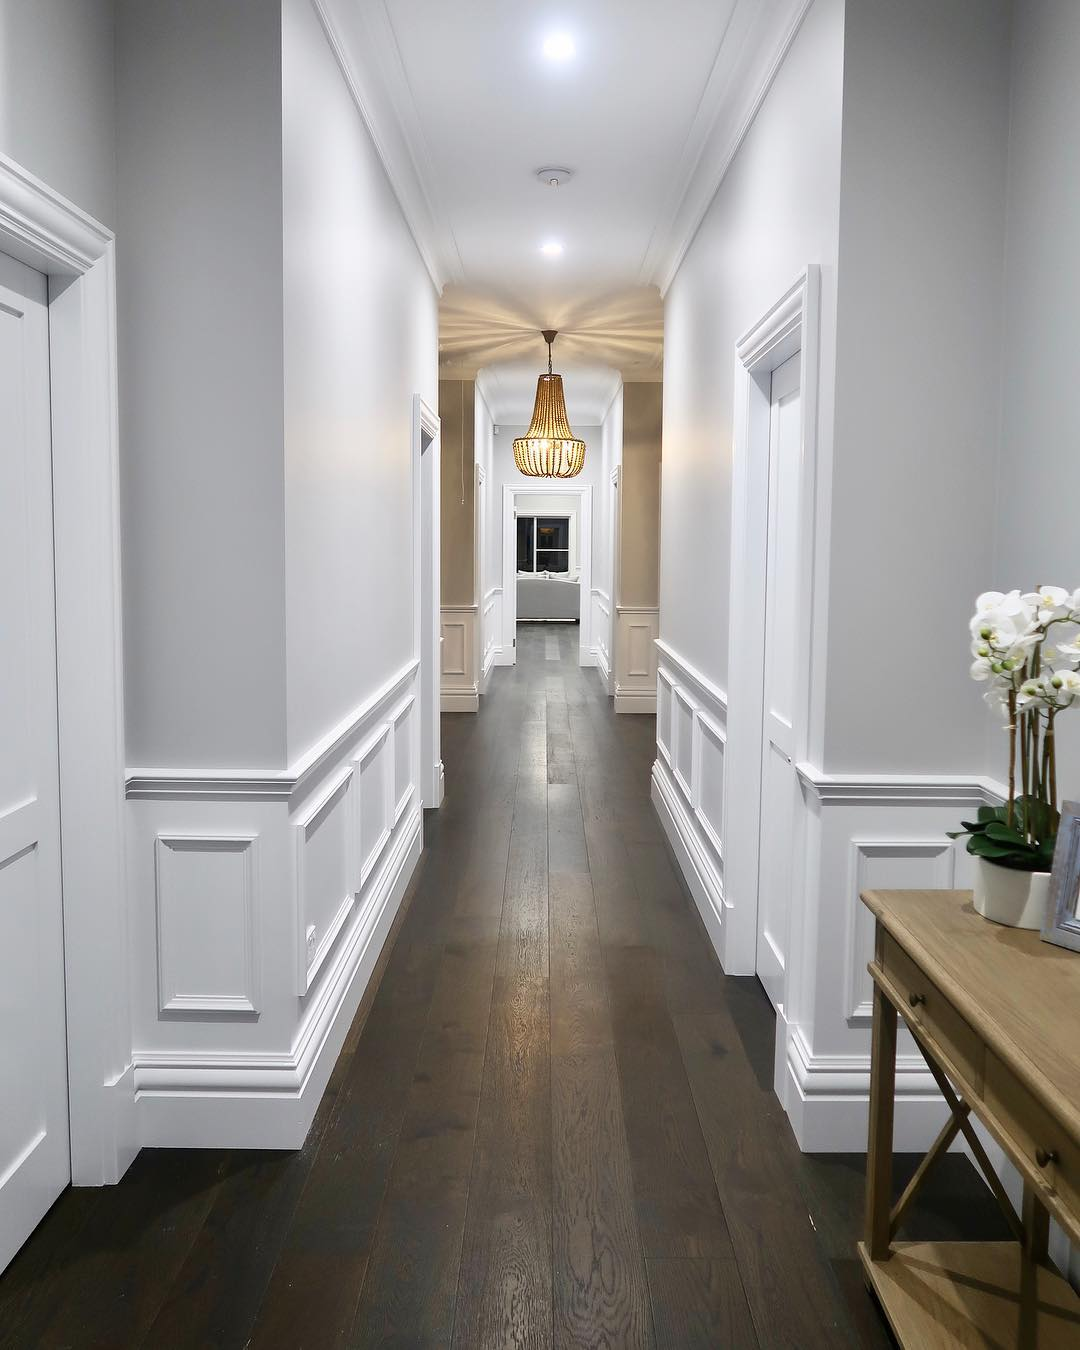 What Is Wainscoting Called In Australia? We Explain